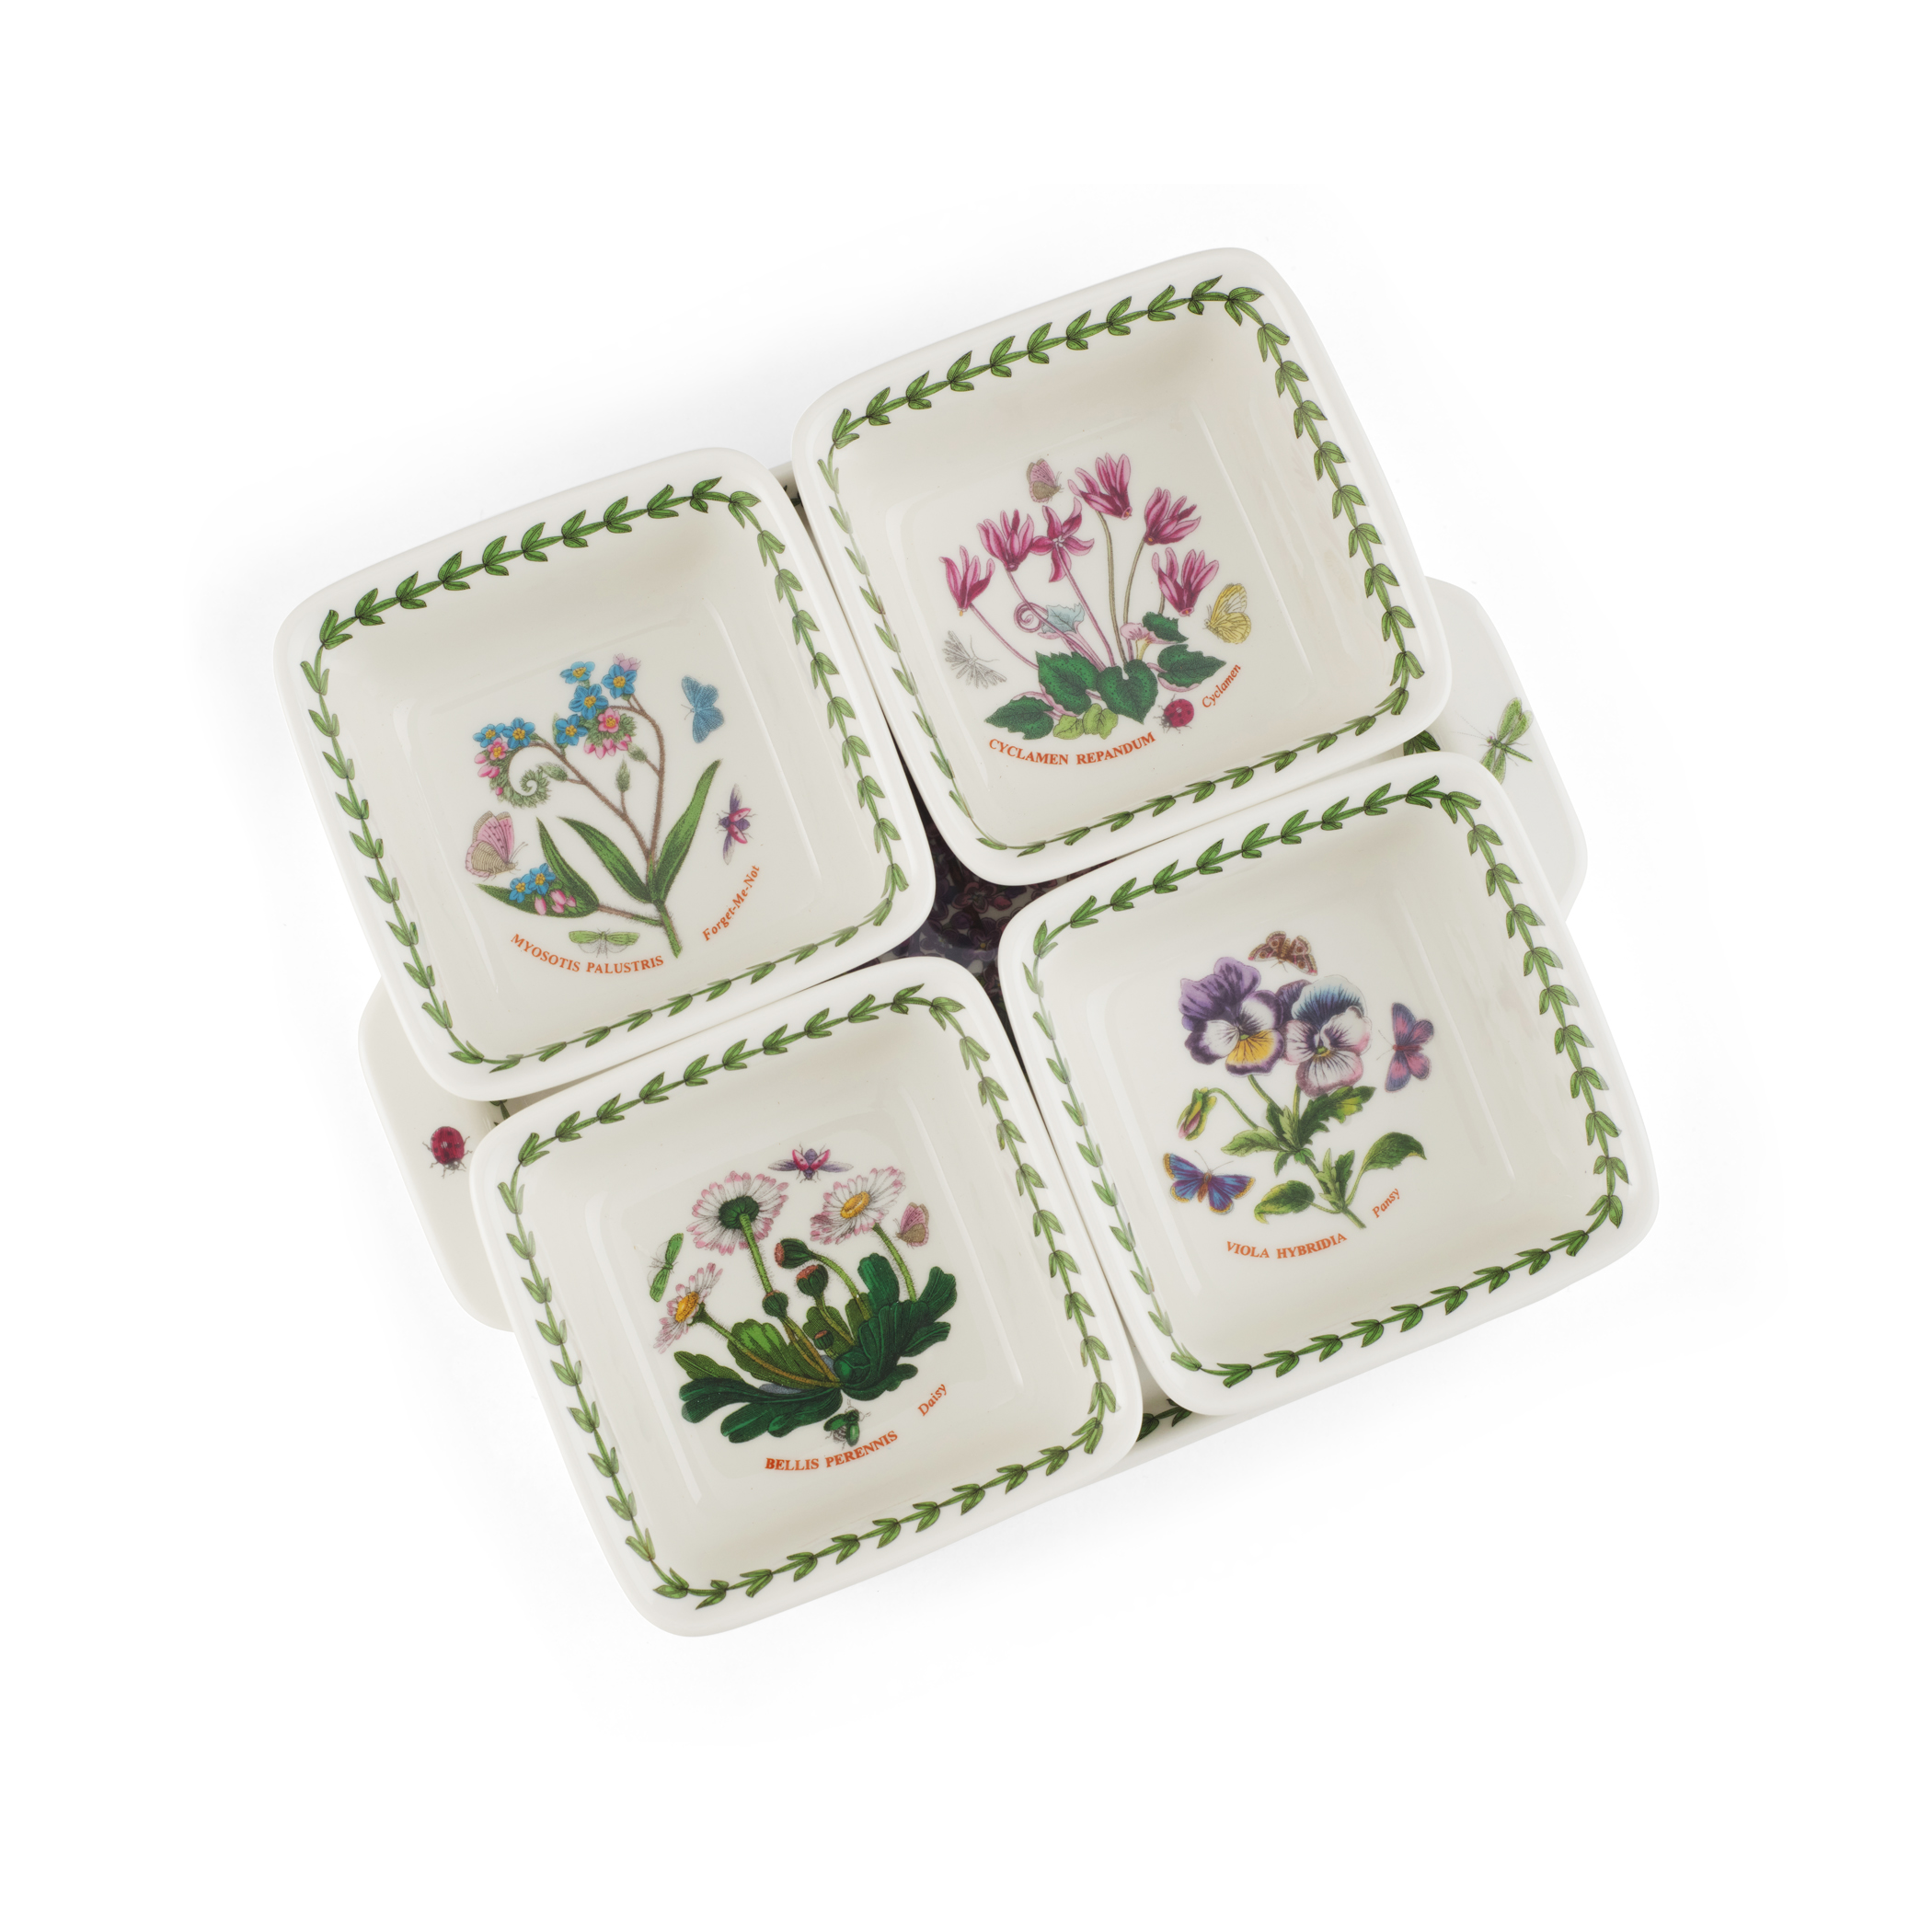 Botanic Garden 5-piece Accent Bowl Set image number null